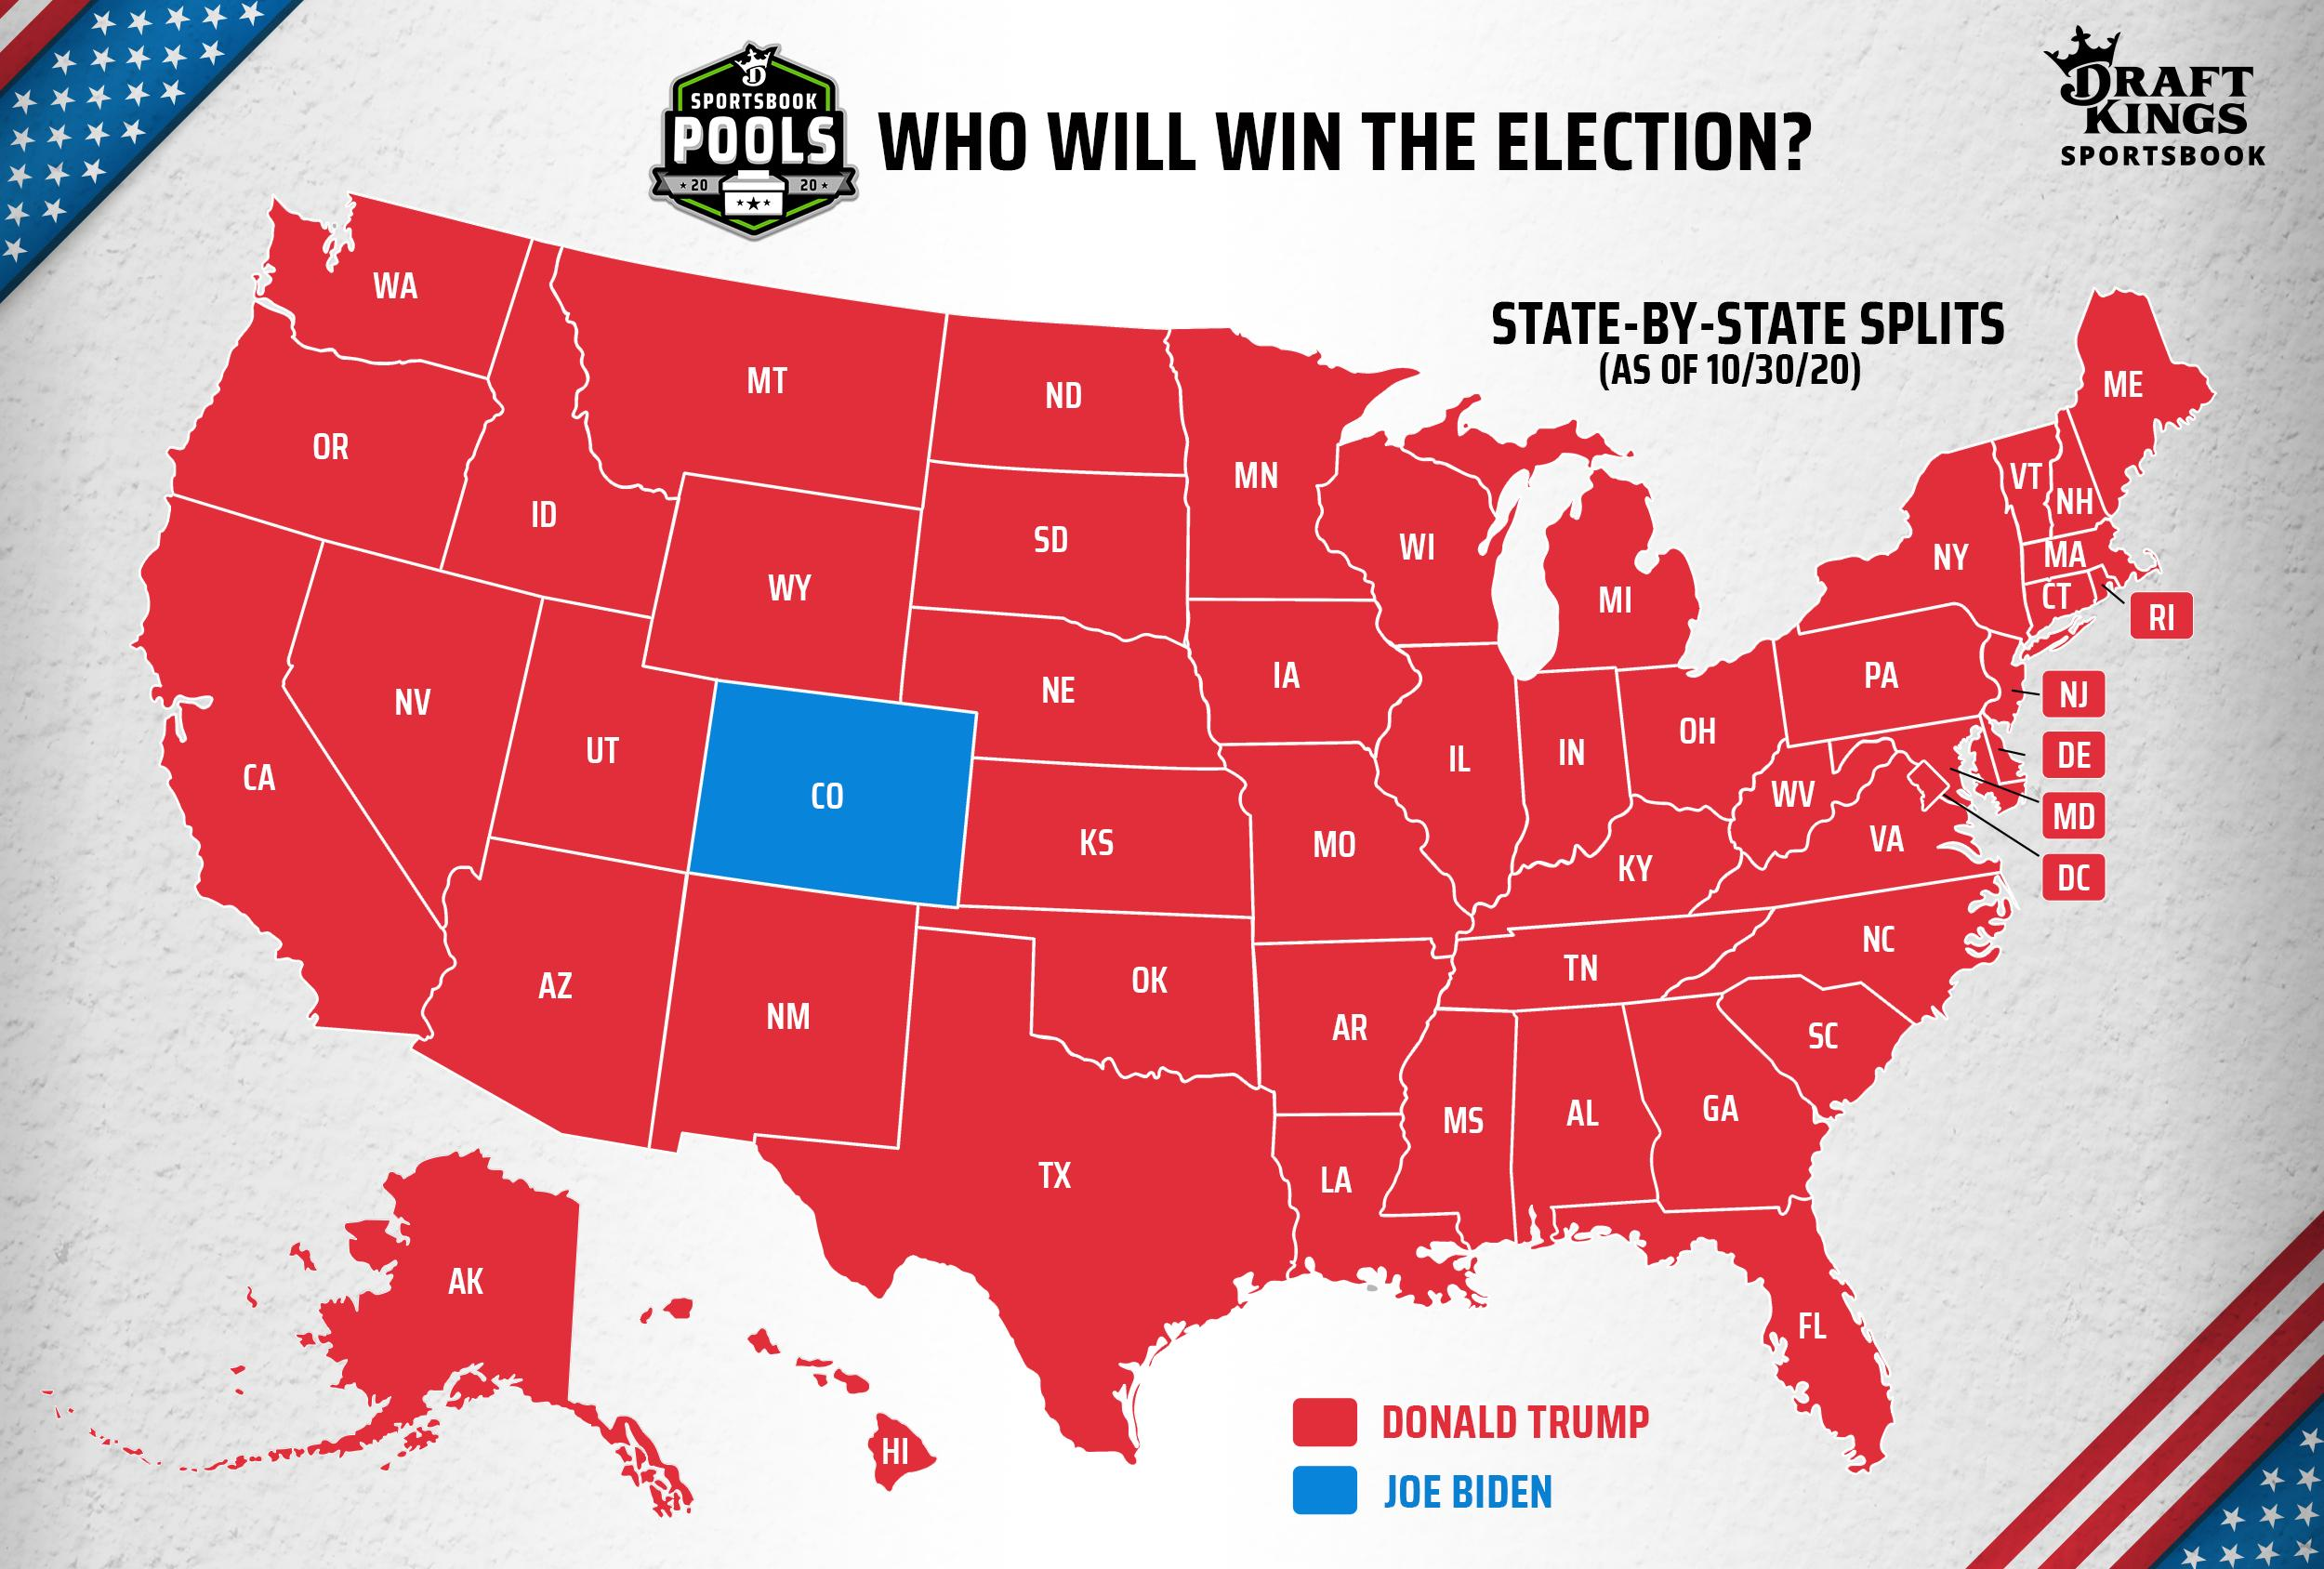 Draft Kings Election Pool: A Majority in 49 States Predict a Trump Win